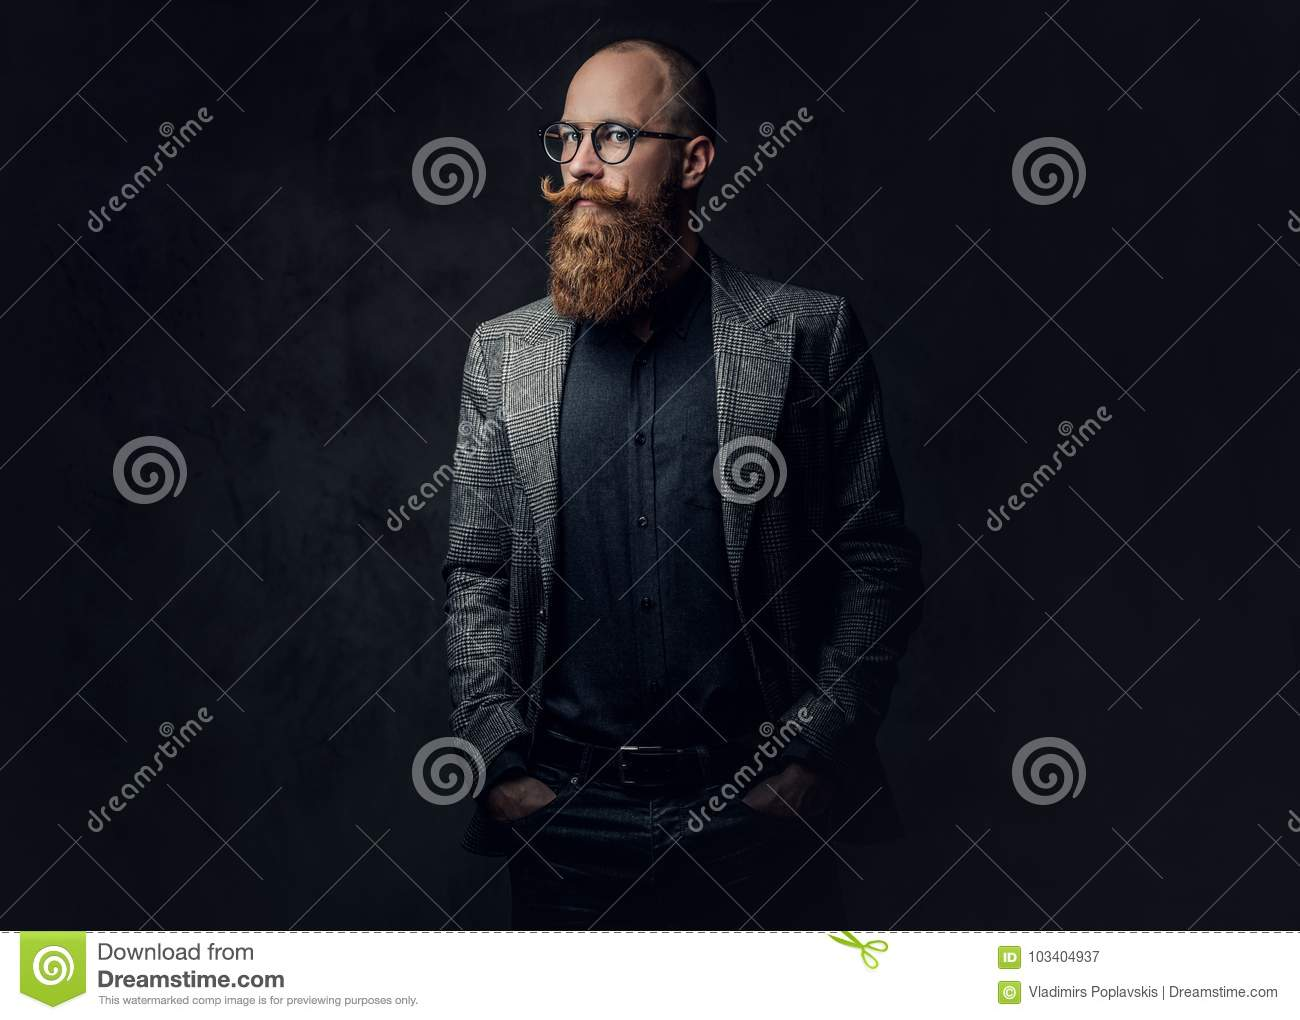 Redhead bearded male in a suit.